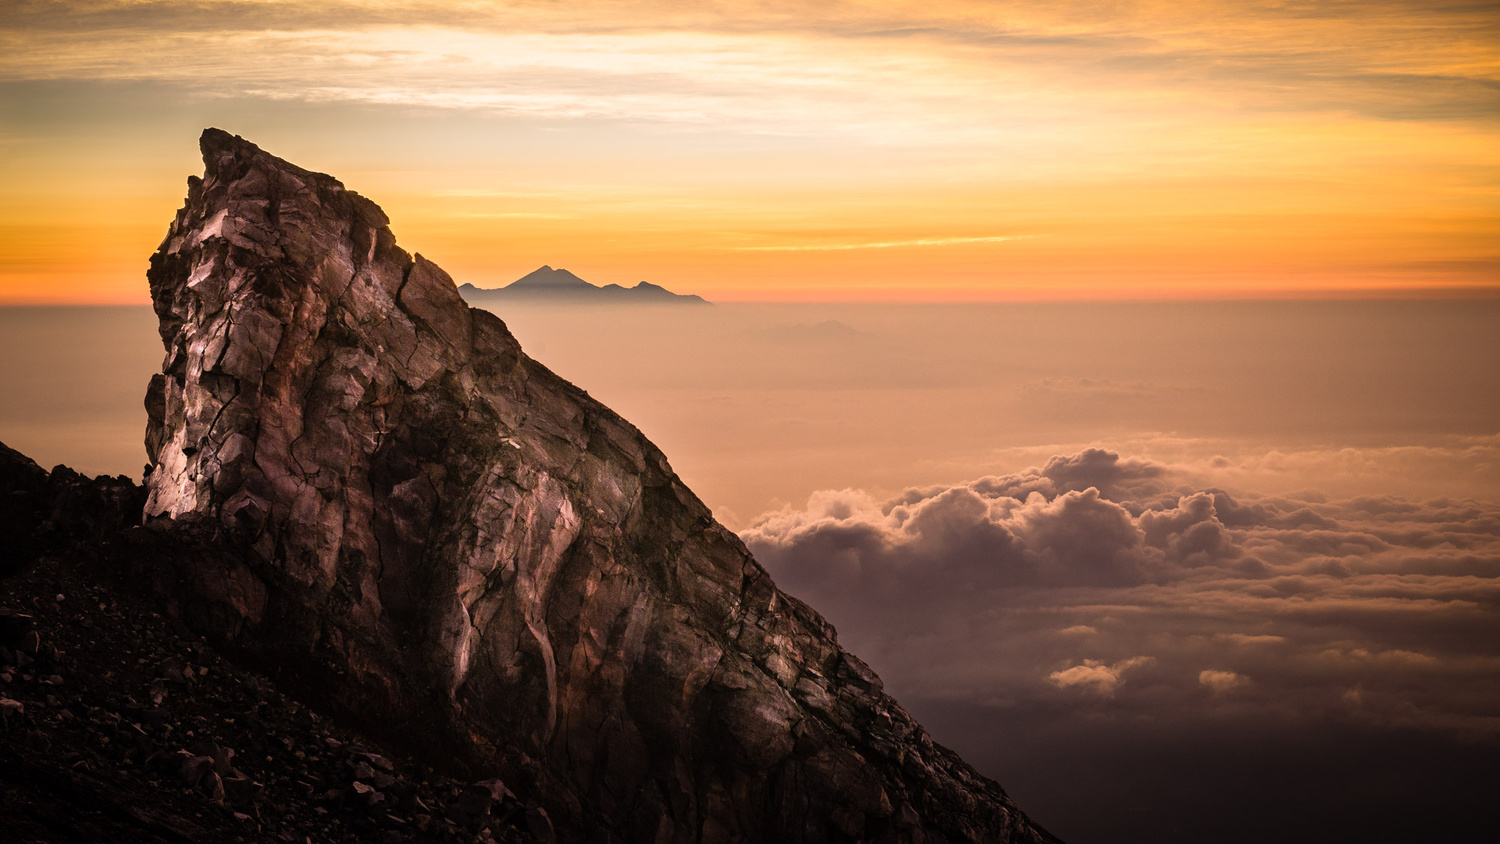 On top of the Agung by Philip Erpenbeck